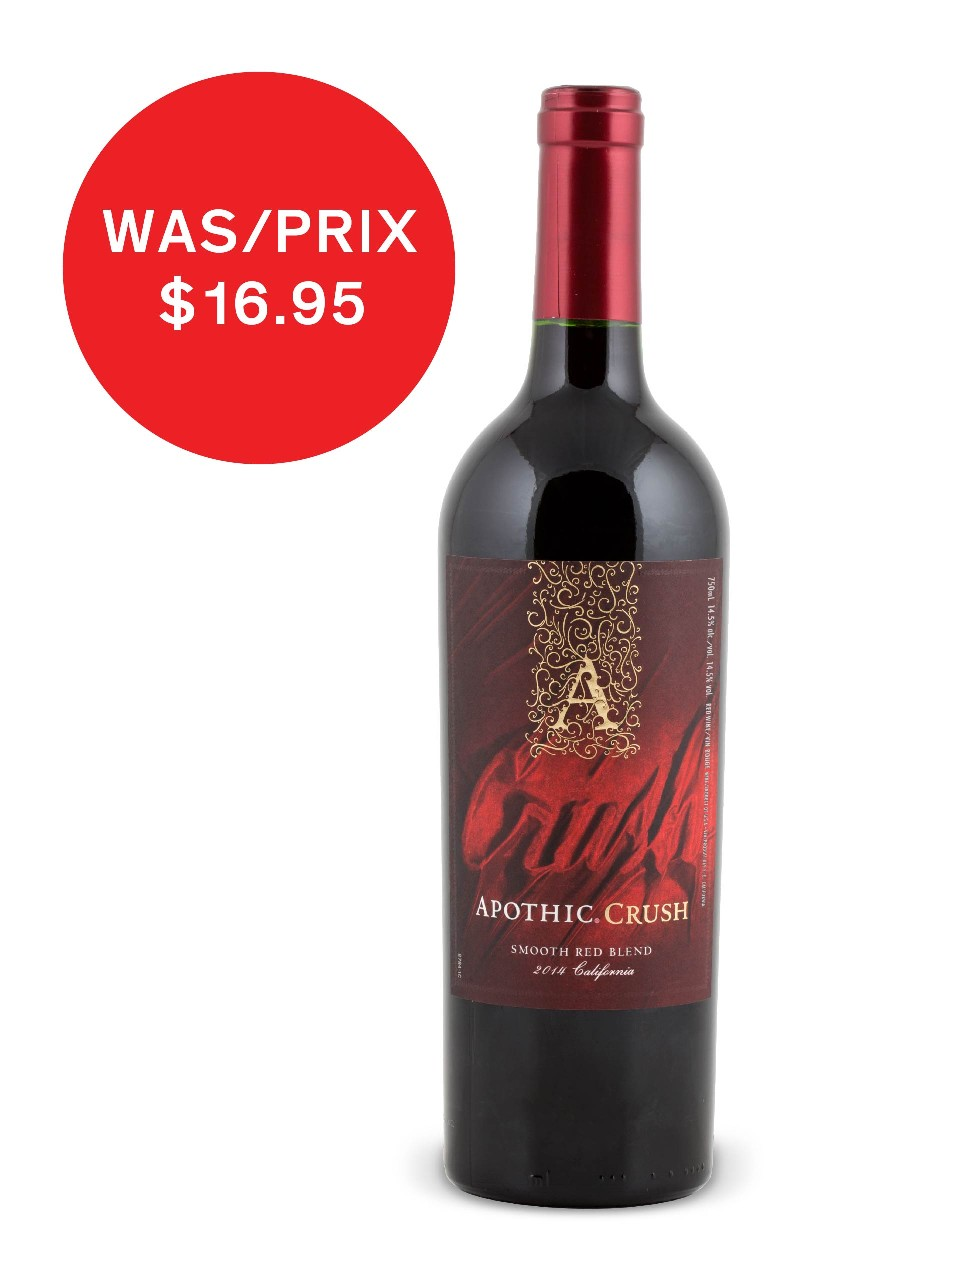 Apothic Crush Red Blend from LCBO